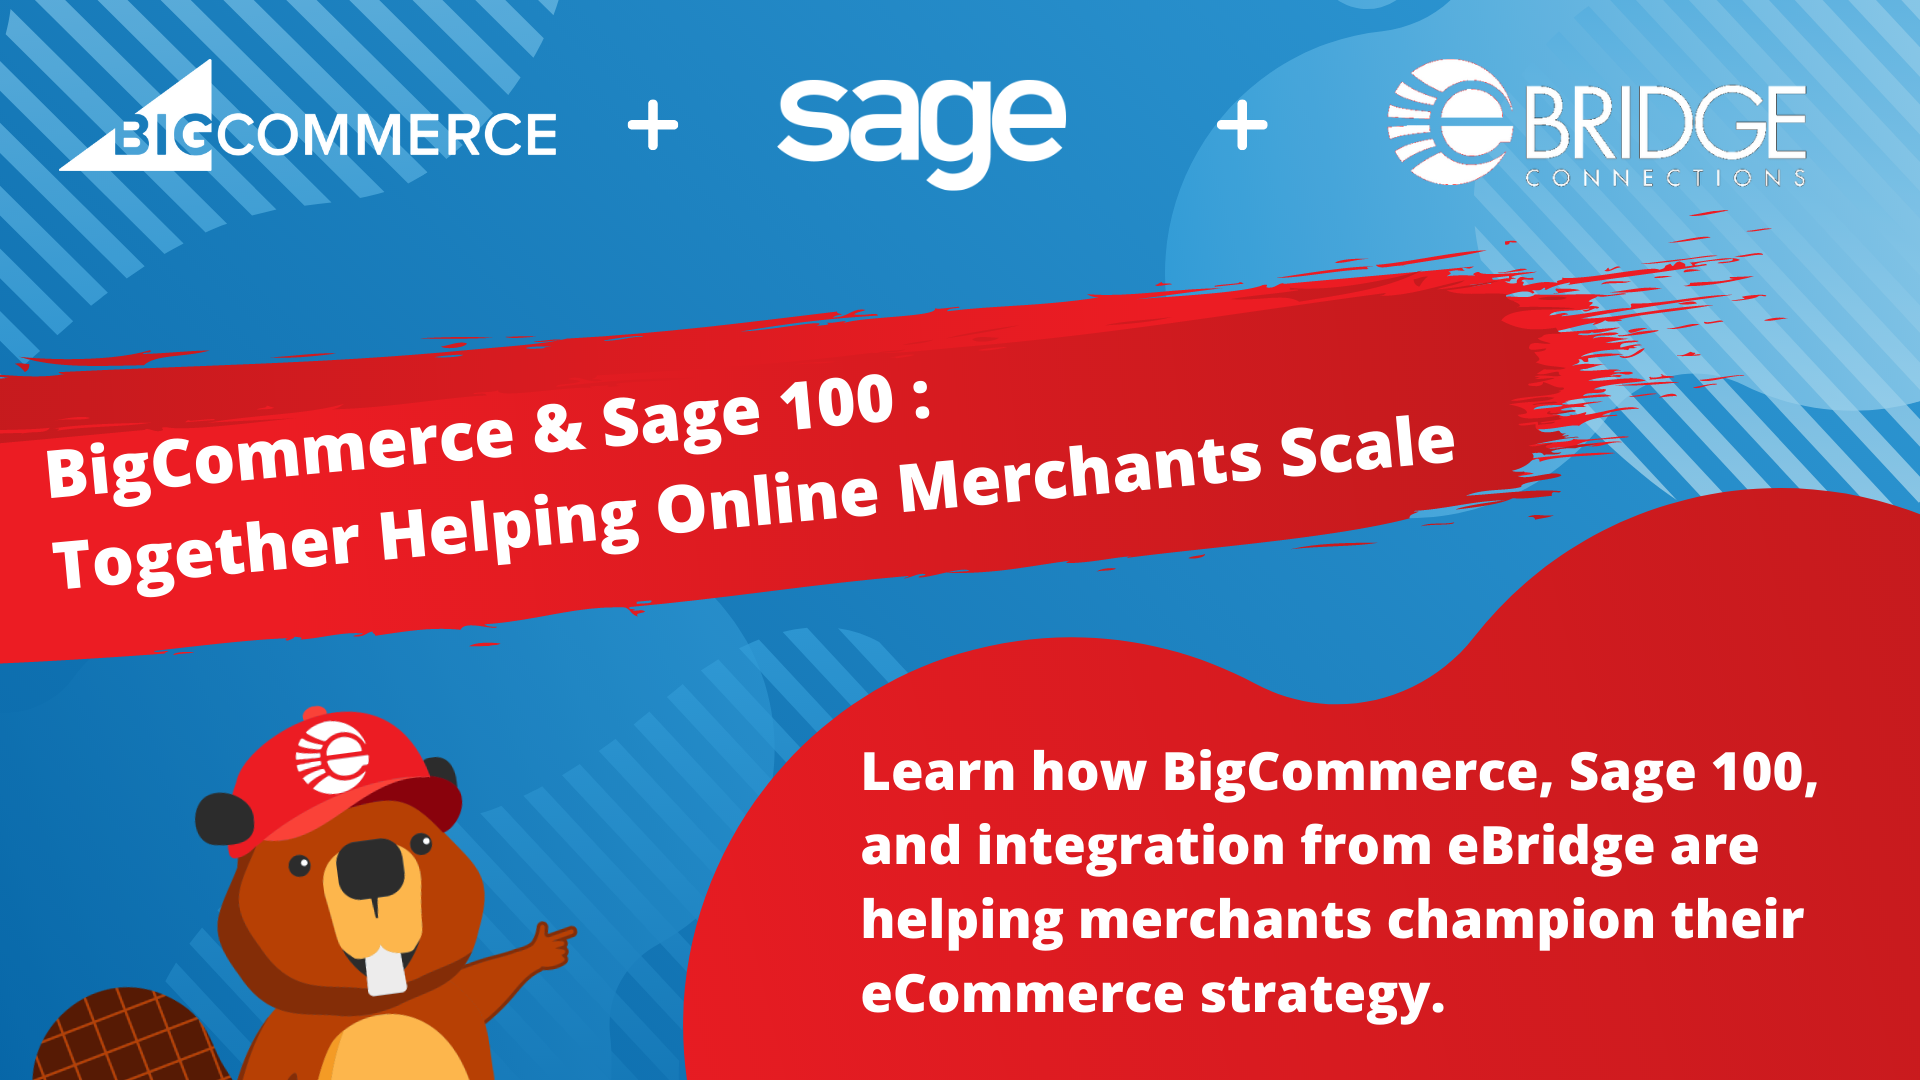 BigCommerce & Sage 100: Together Helping Merchants Scale Their Businesses Online